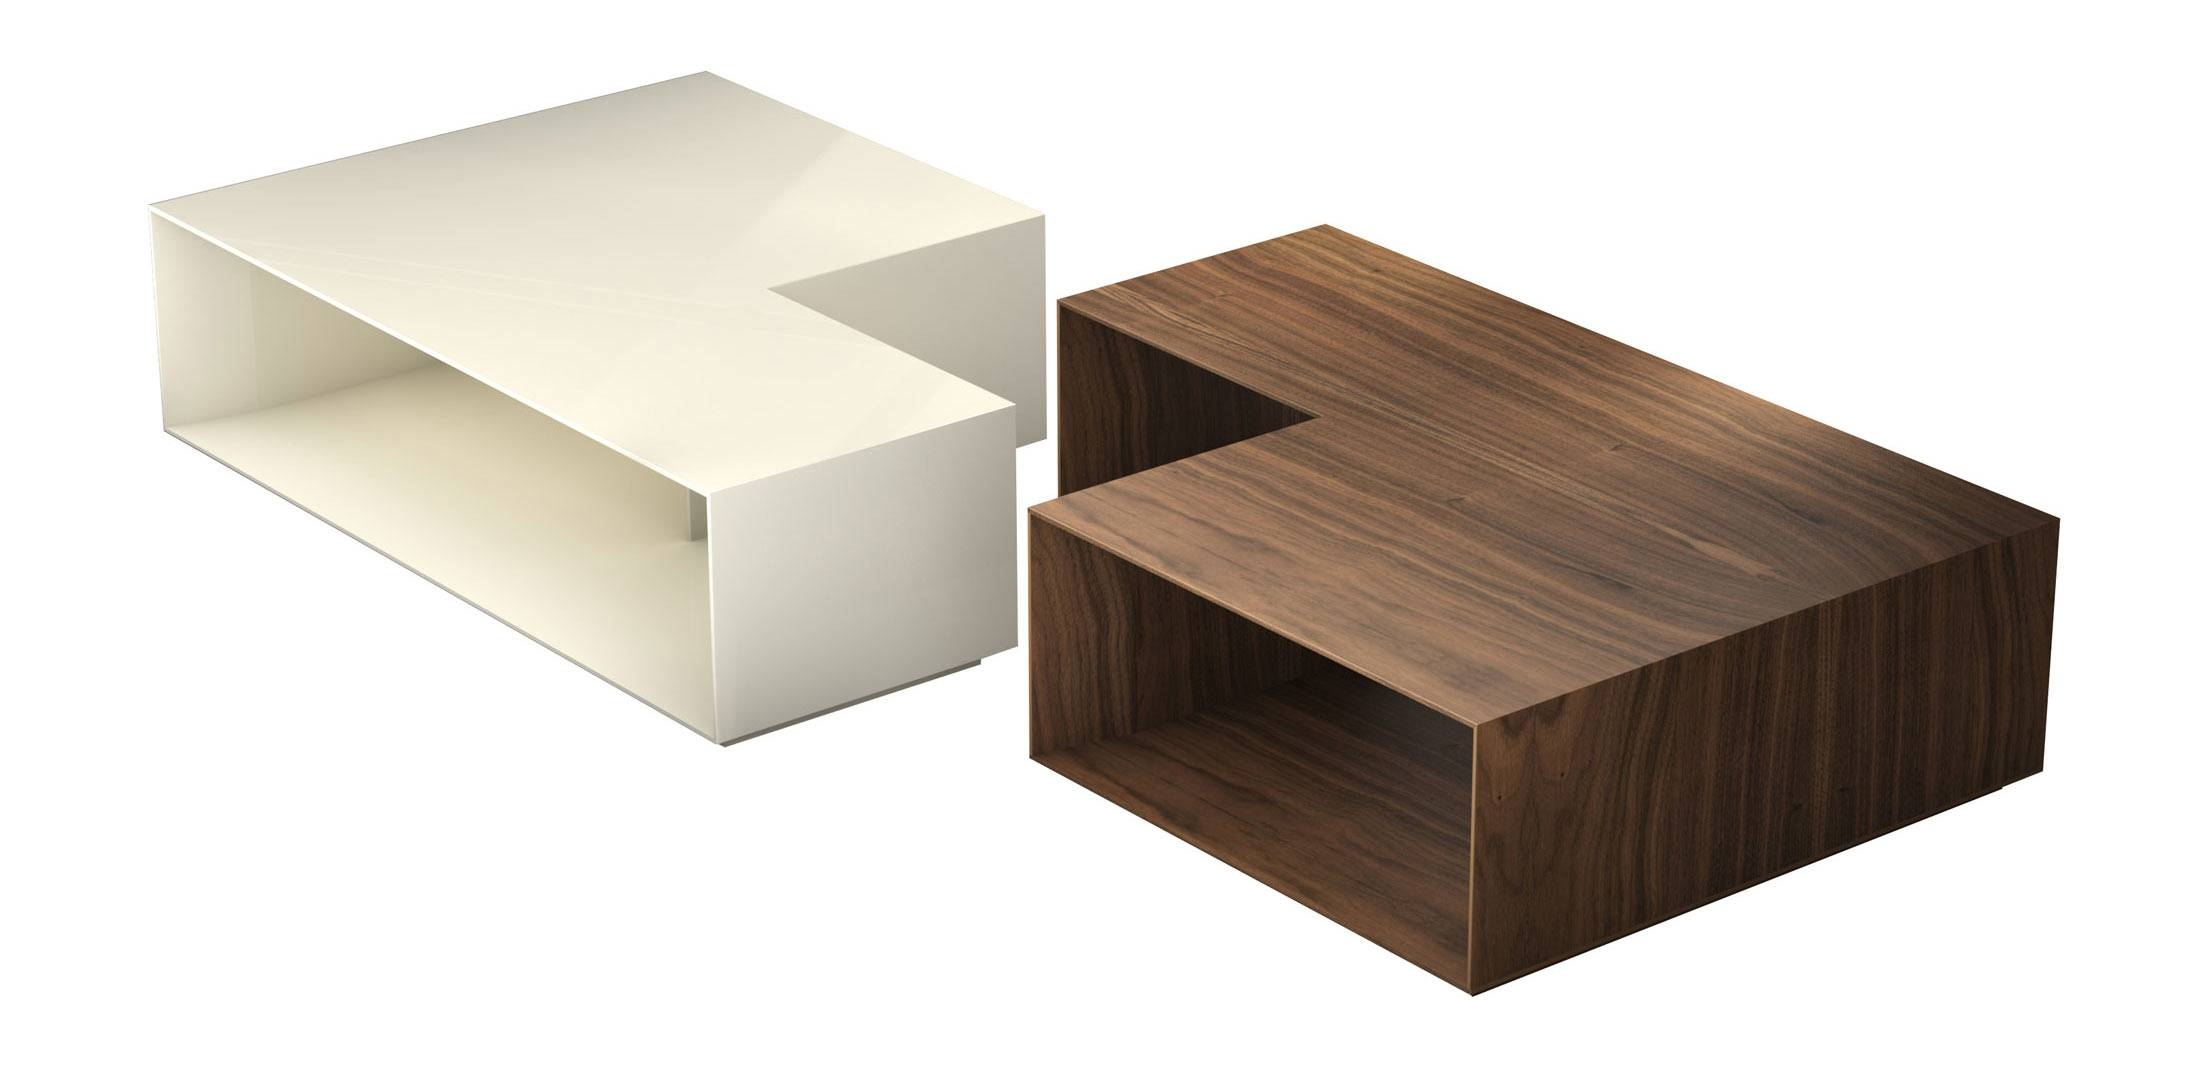 Putney Jigsaw Coffee Table Walnut And Beige Lacquermodloft With Regard To Beige Coffee Tables (View 21 of 30)